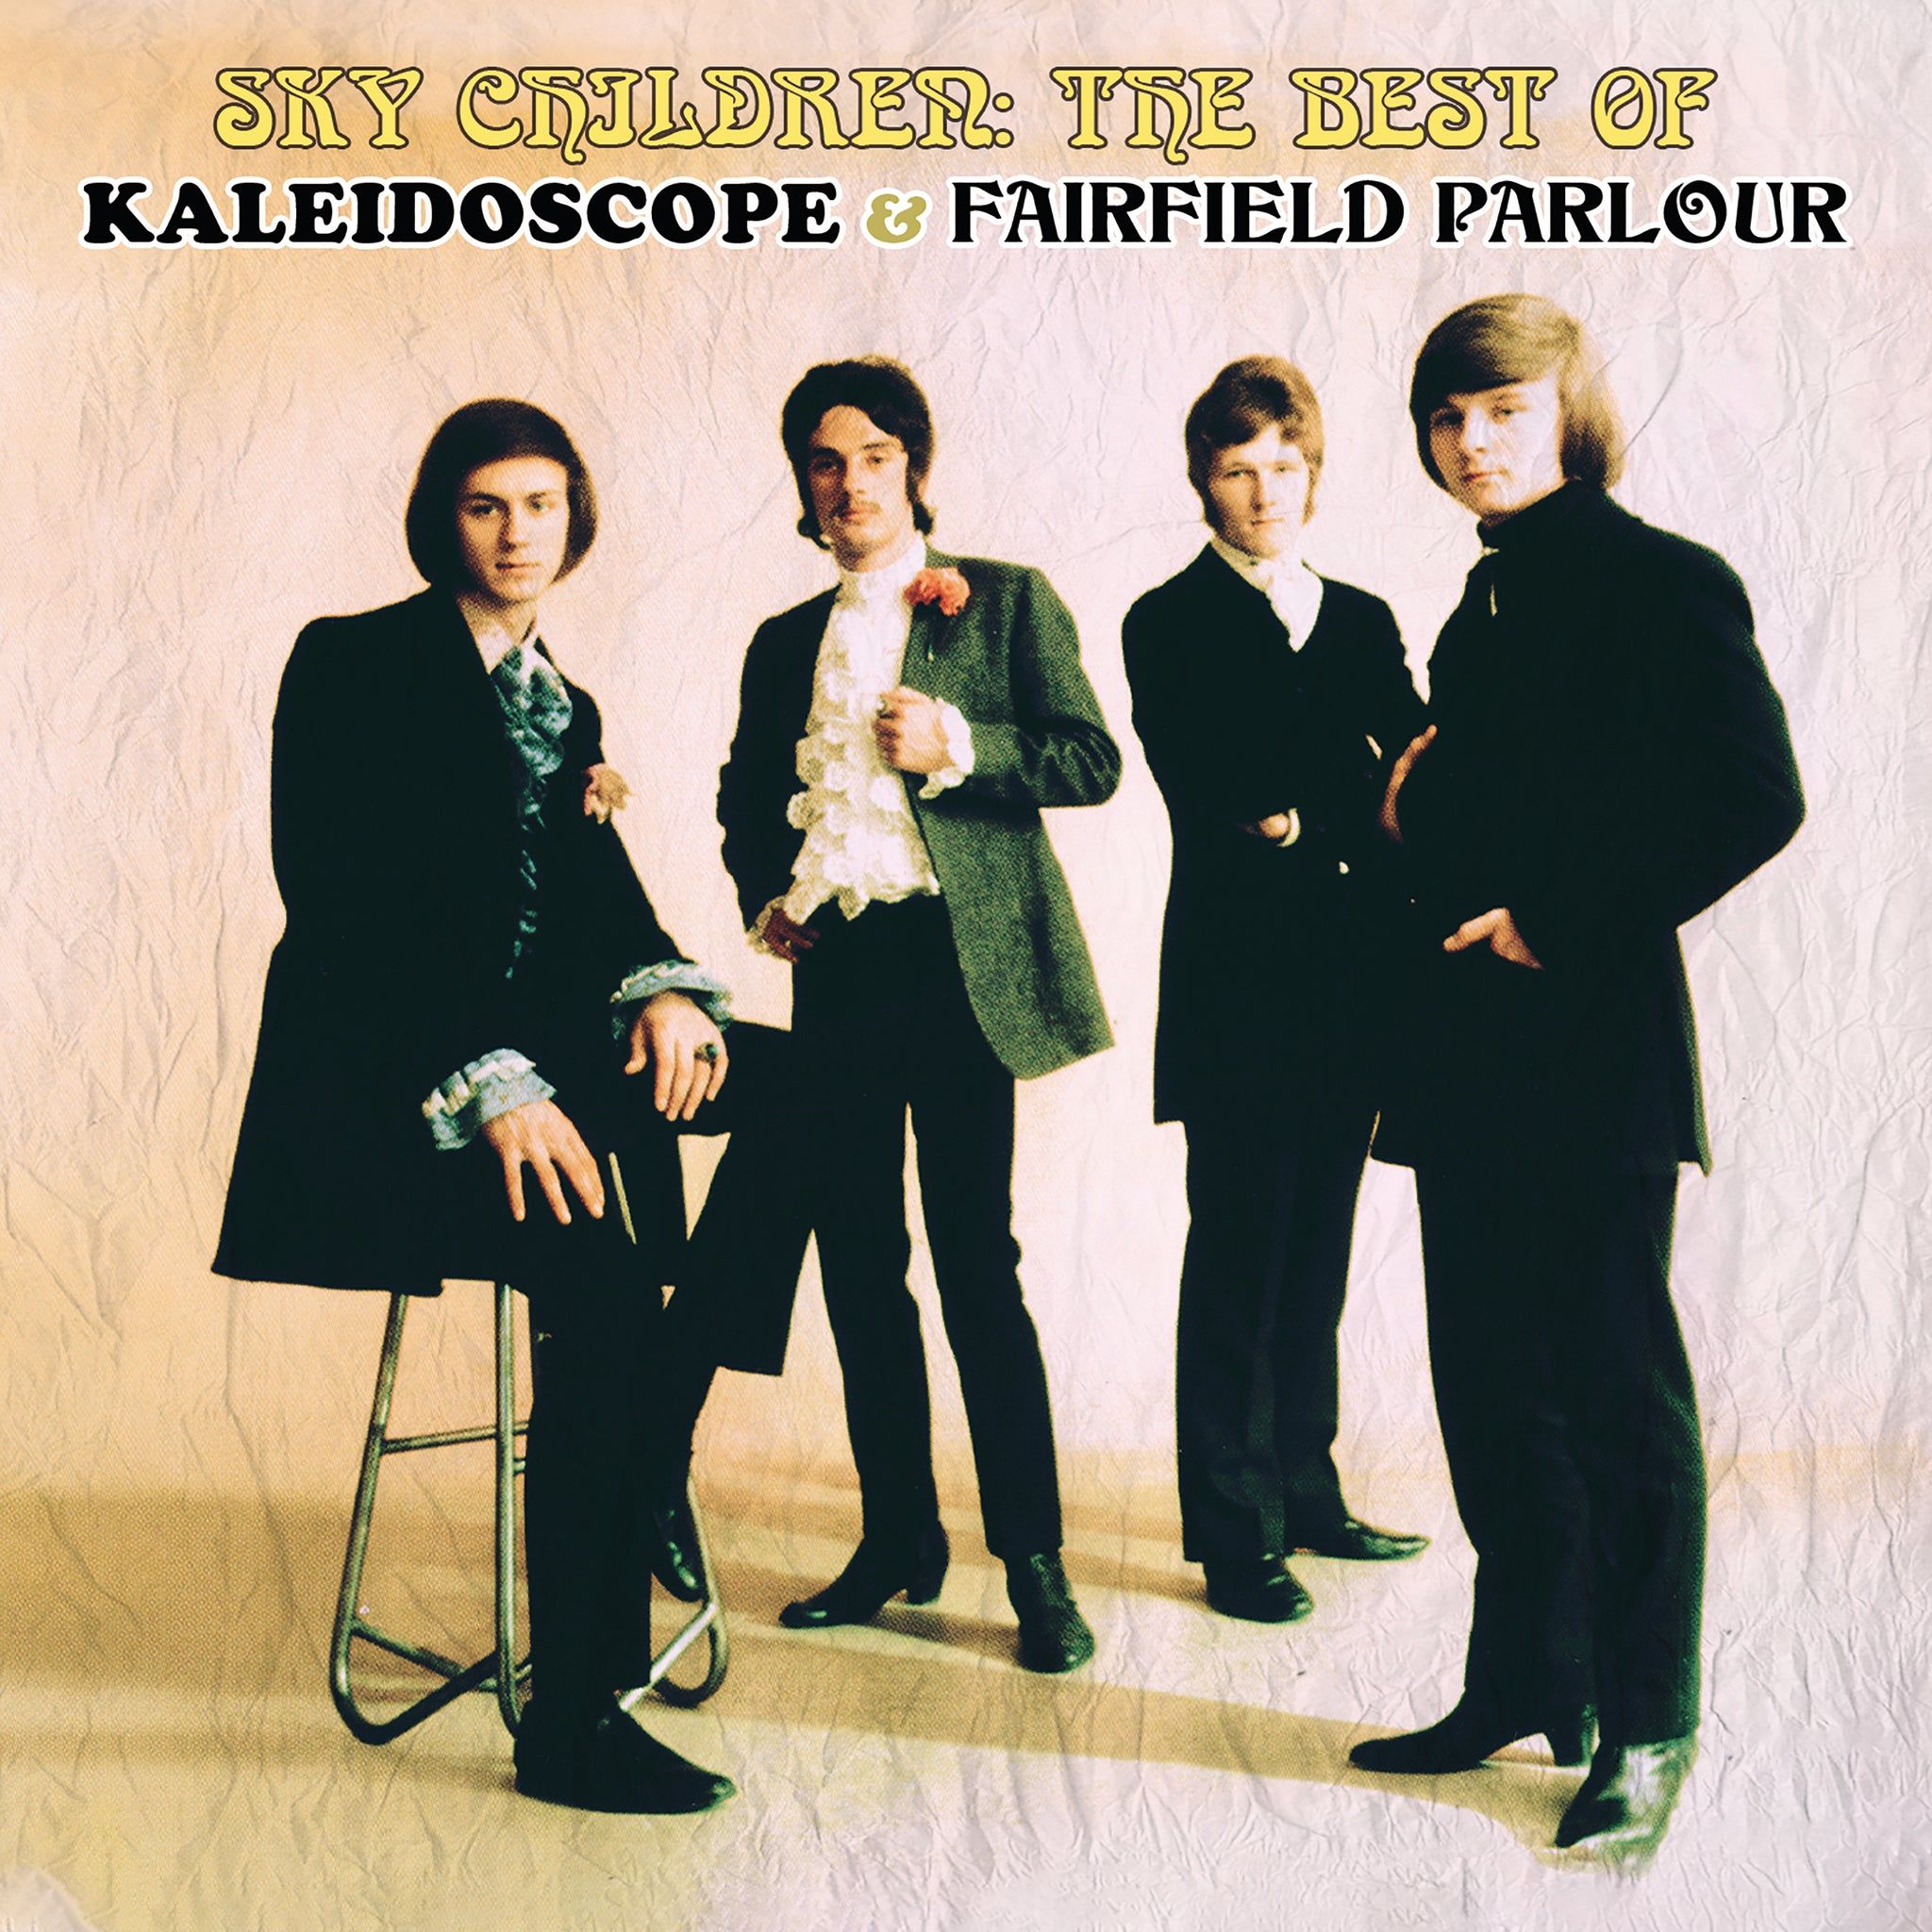 KALEIDOSCOPE / FAIRFIELD PARLOUR - SKY CHILDREN: THE BEST OF... (CD/DVD)